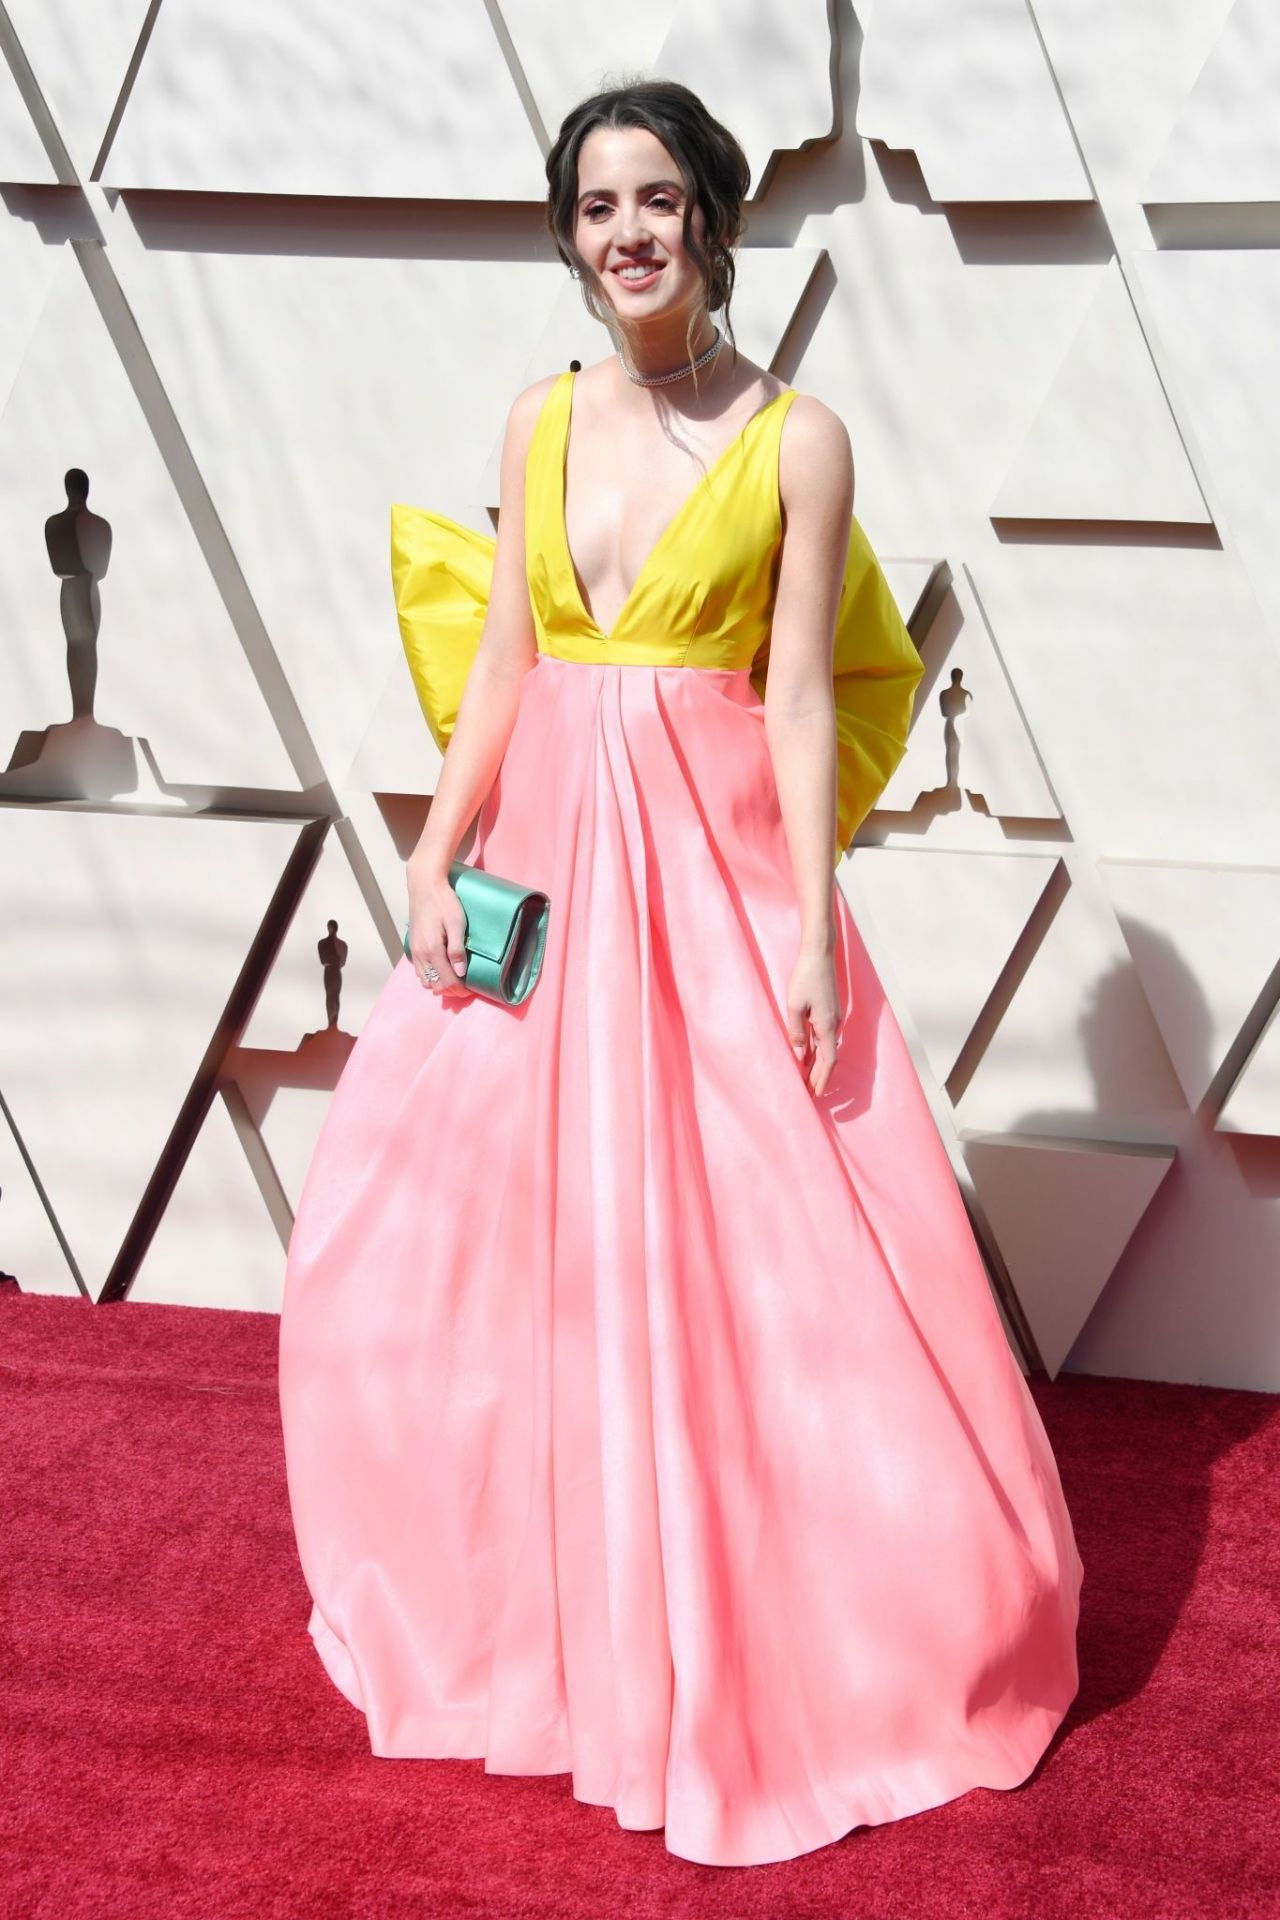 Laura marano oscars 2019 red carpet - Red carpet oscar dresses ...